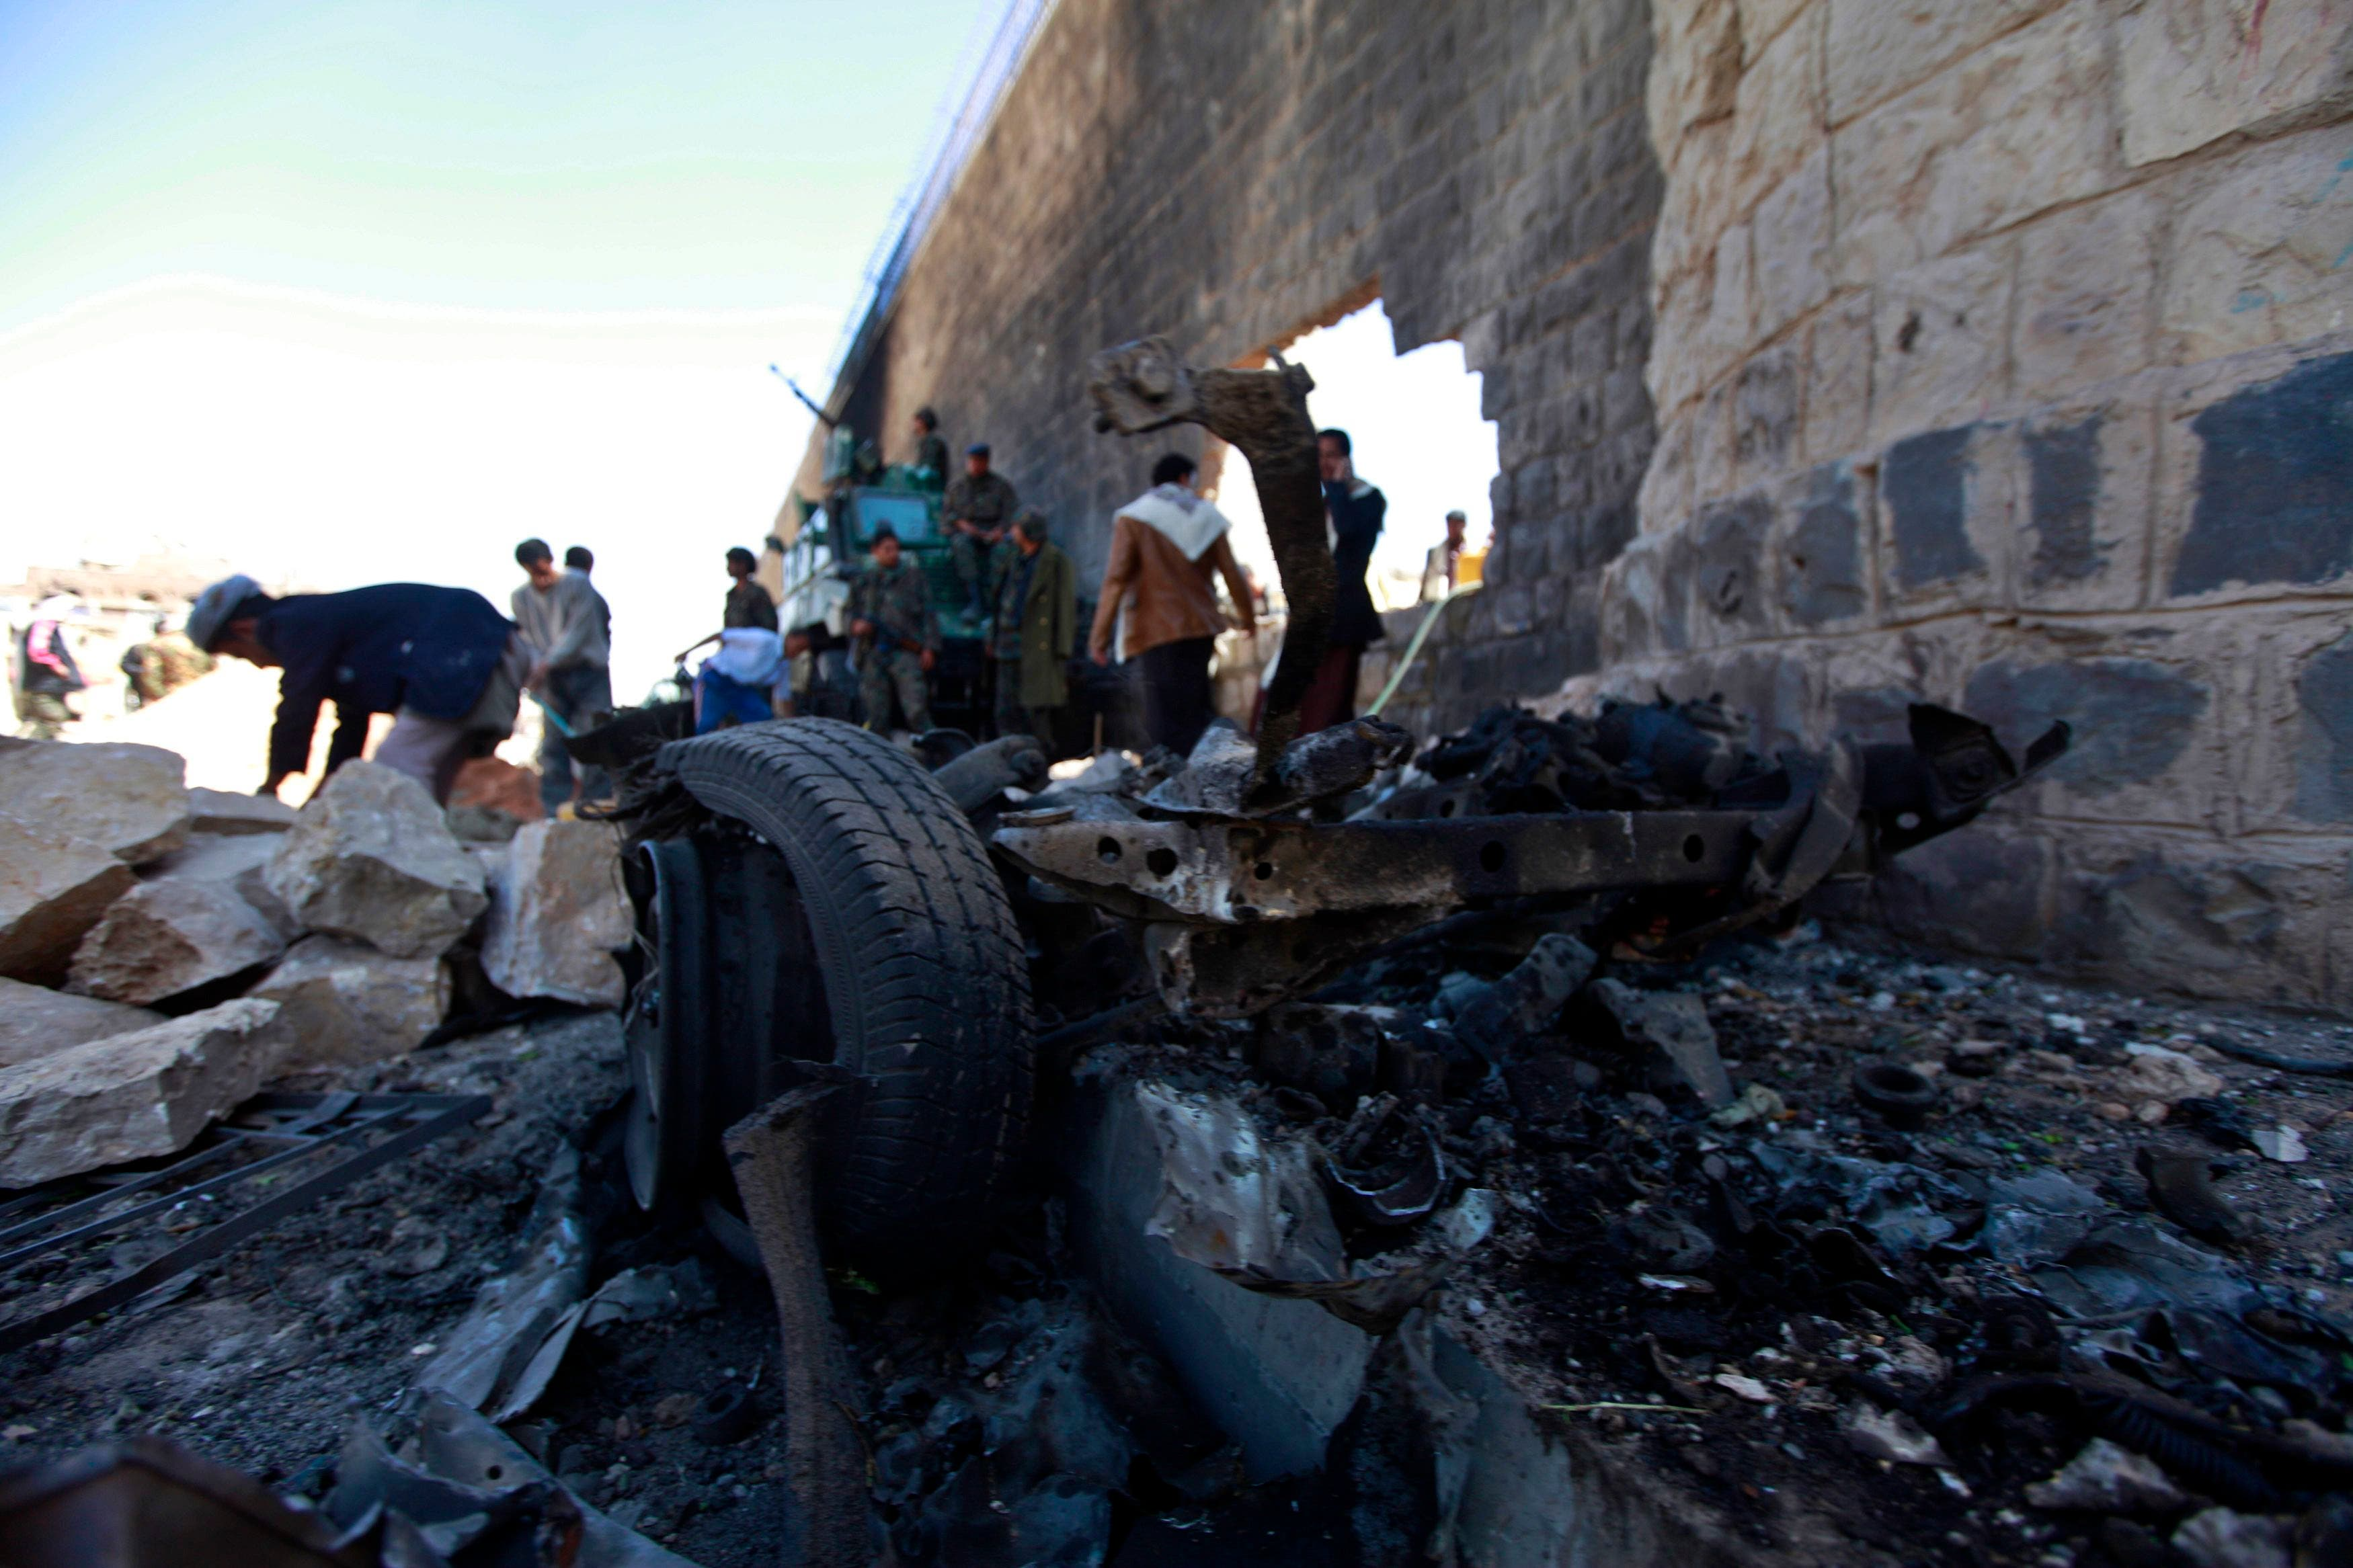 Explosion in Sanaa: the aftermath